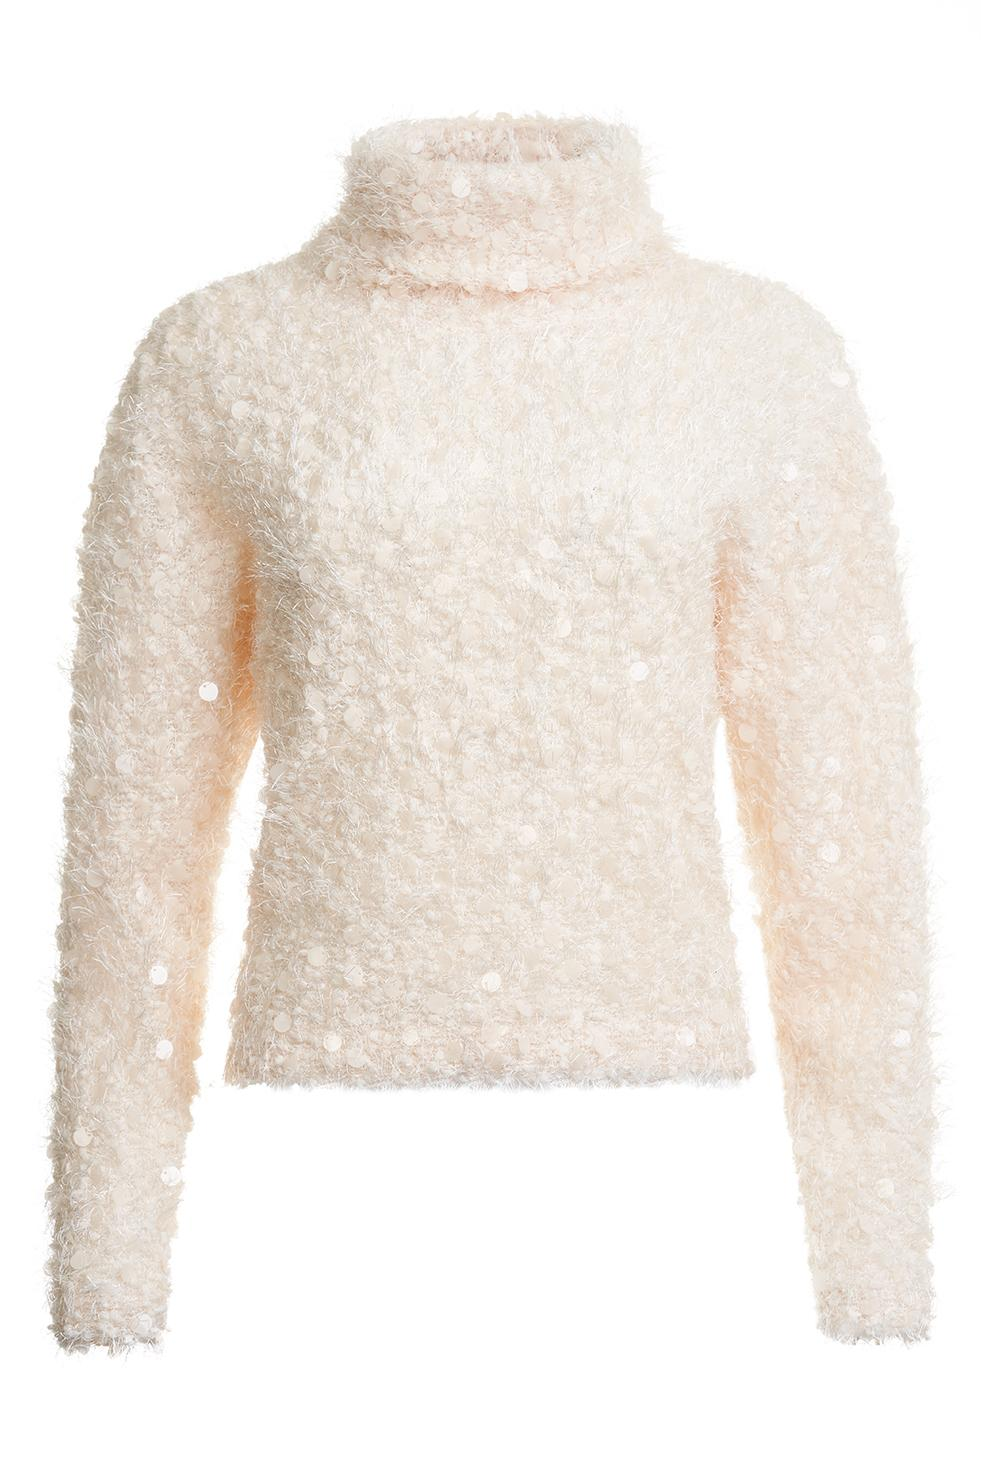 Doly Fluffy Sequin Sweater